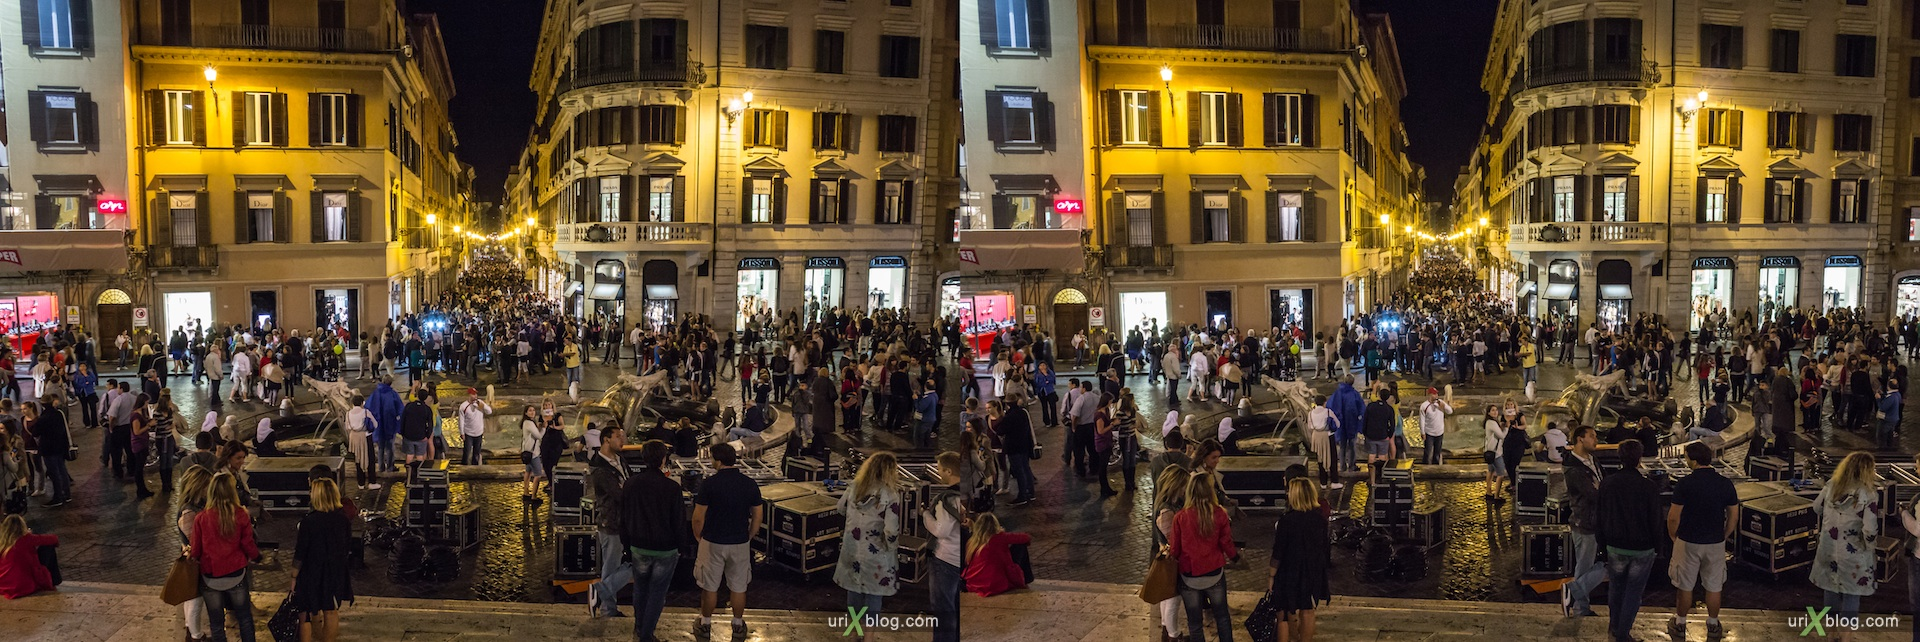 2012, Vogue Fashions Night Out, festival, Spanish square, Fountain of the Old Boat, via dei Condotti street, Rome, Italy, Europe, 3D, stereo pair, cross-eyed, crossview, cross view stereo pair